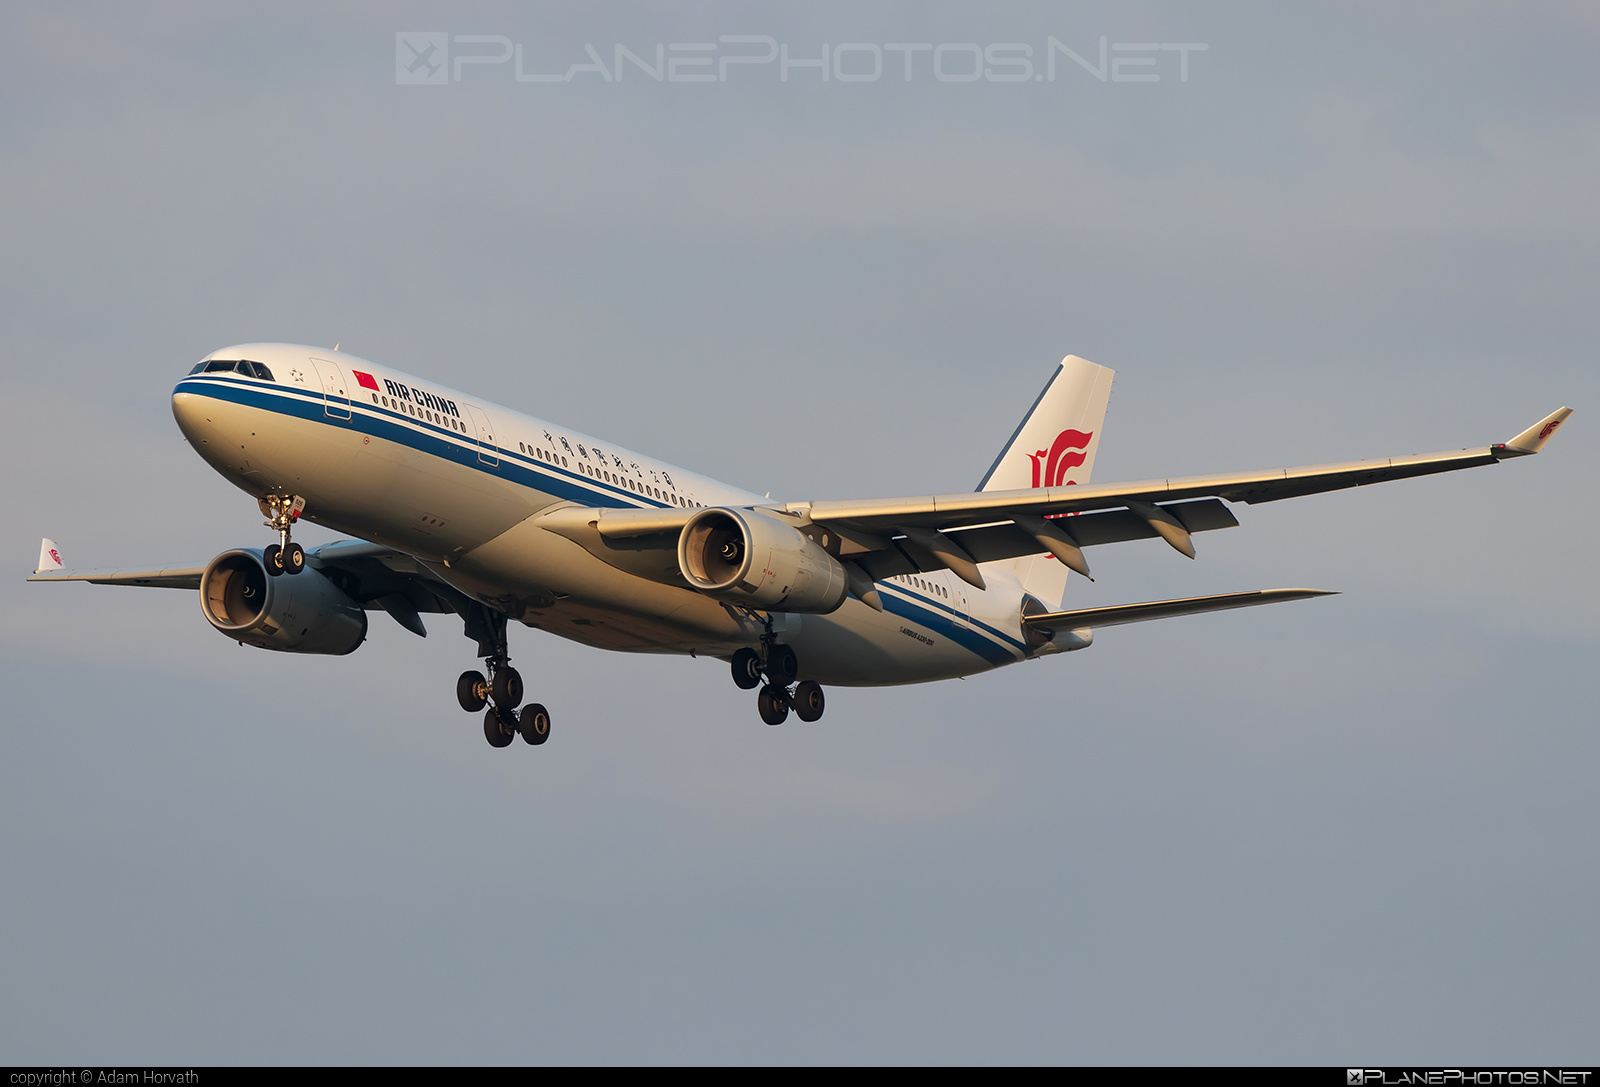 Airbus A330-243 - B-6505 operated by Air China #a330 #a330family #airbus #airbus330 #airchina